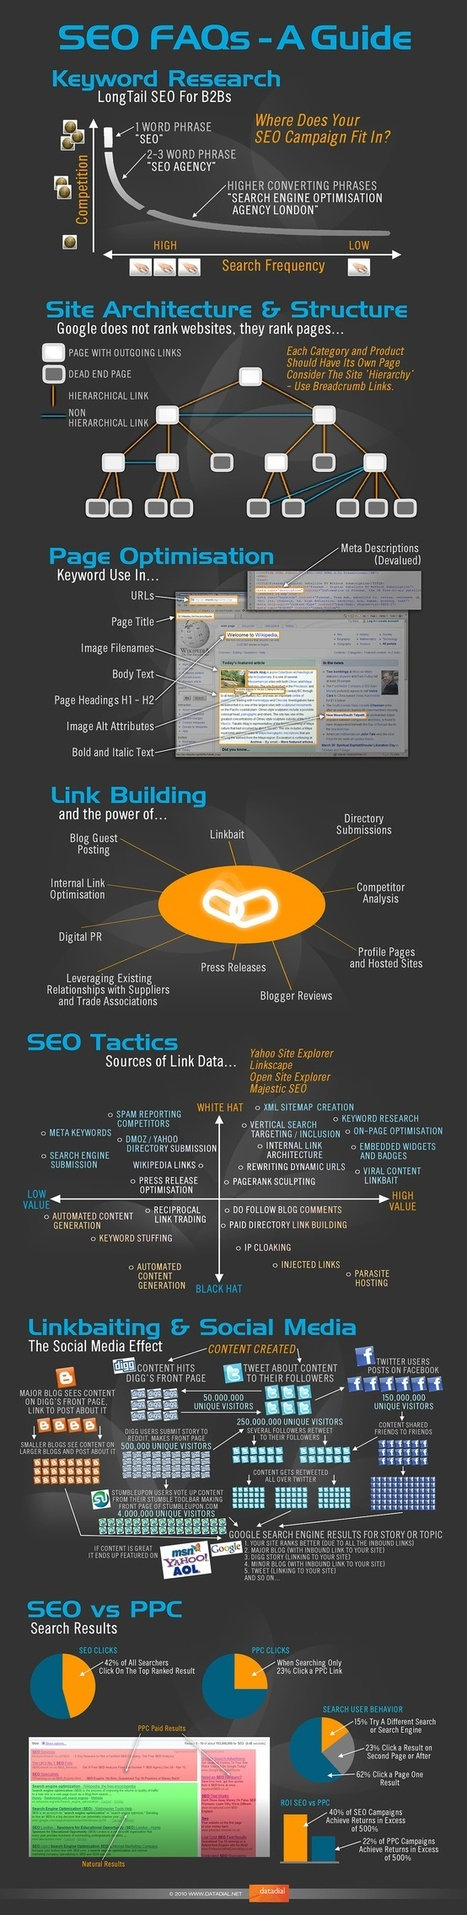 SEO FAQ's Guide [Infographic] | Changes in Advertising | Scoop.it